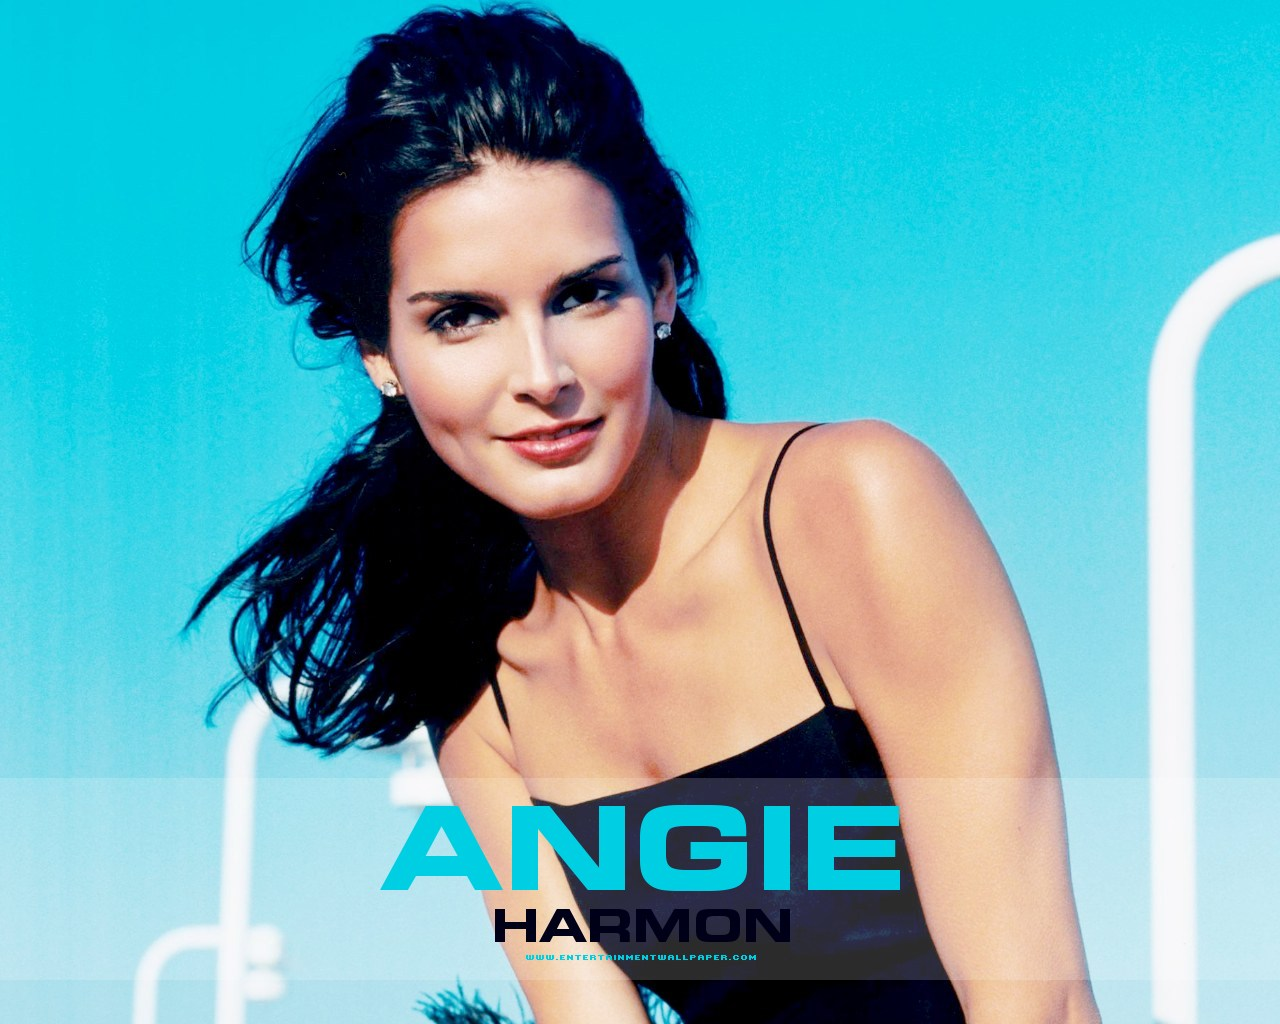 1280x1024 - Angie Harmon Wallpapers 24